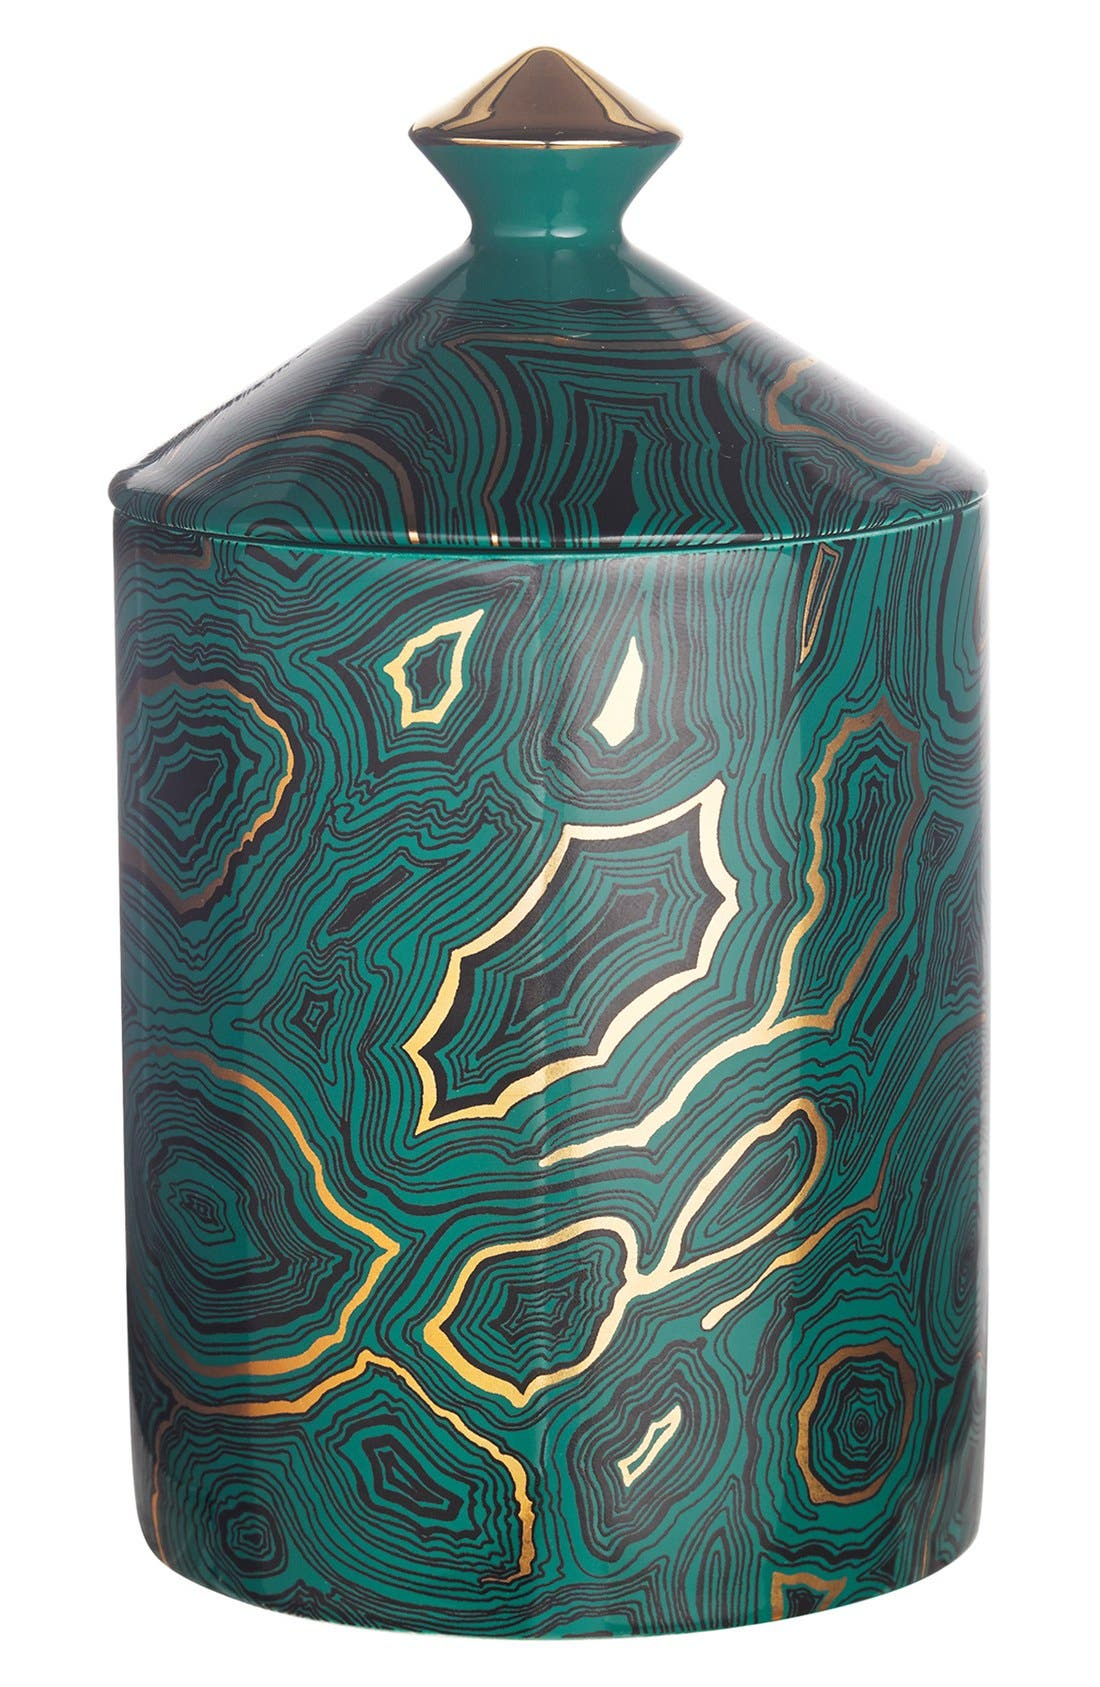 'Malachite' Lidded Candle,                             Main thumbnail 1, color,                             No Color